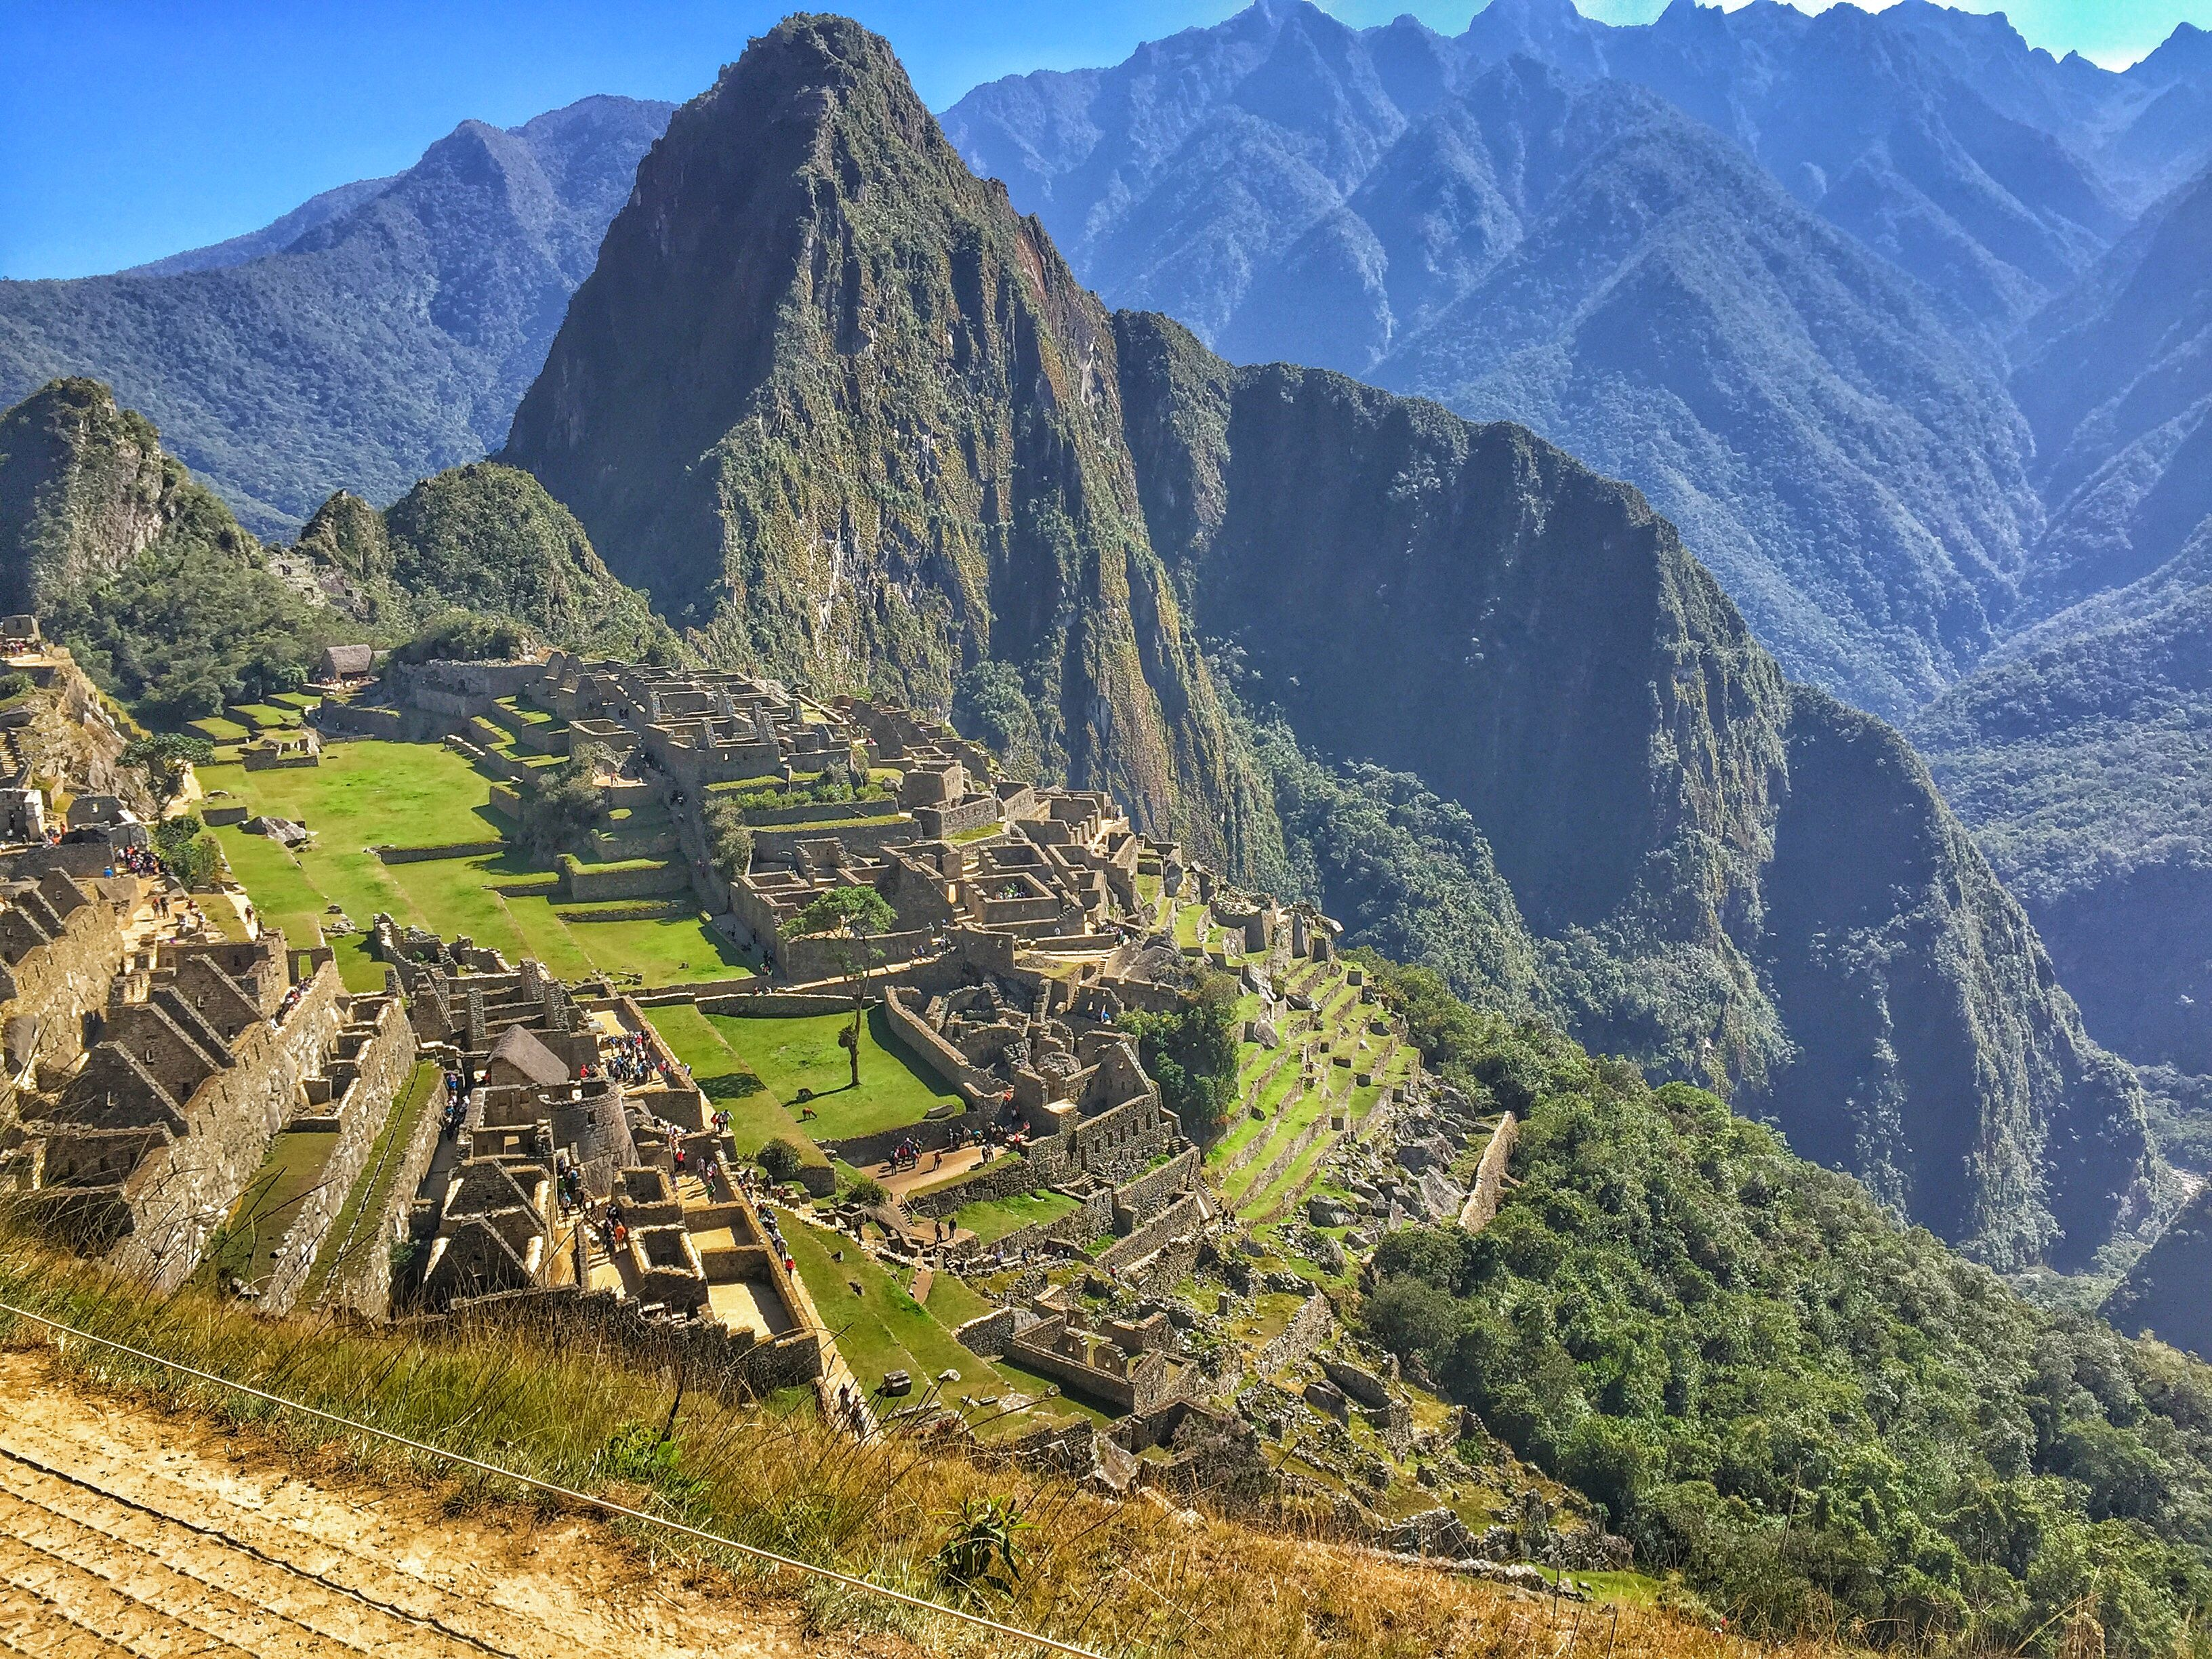 7f59b503ddc800fdc822bf988a208eb5 - How Long To Get To Machu Picchu From Lima